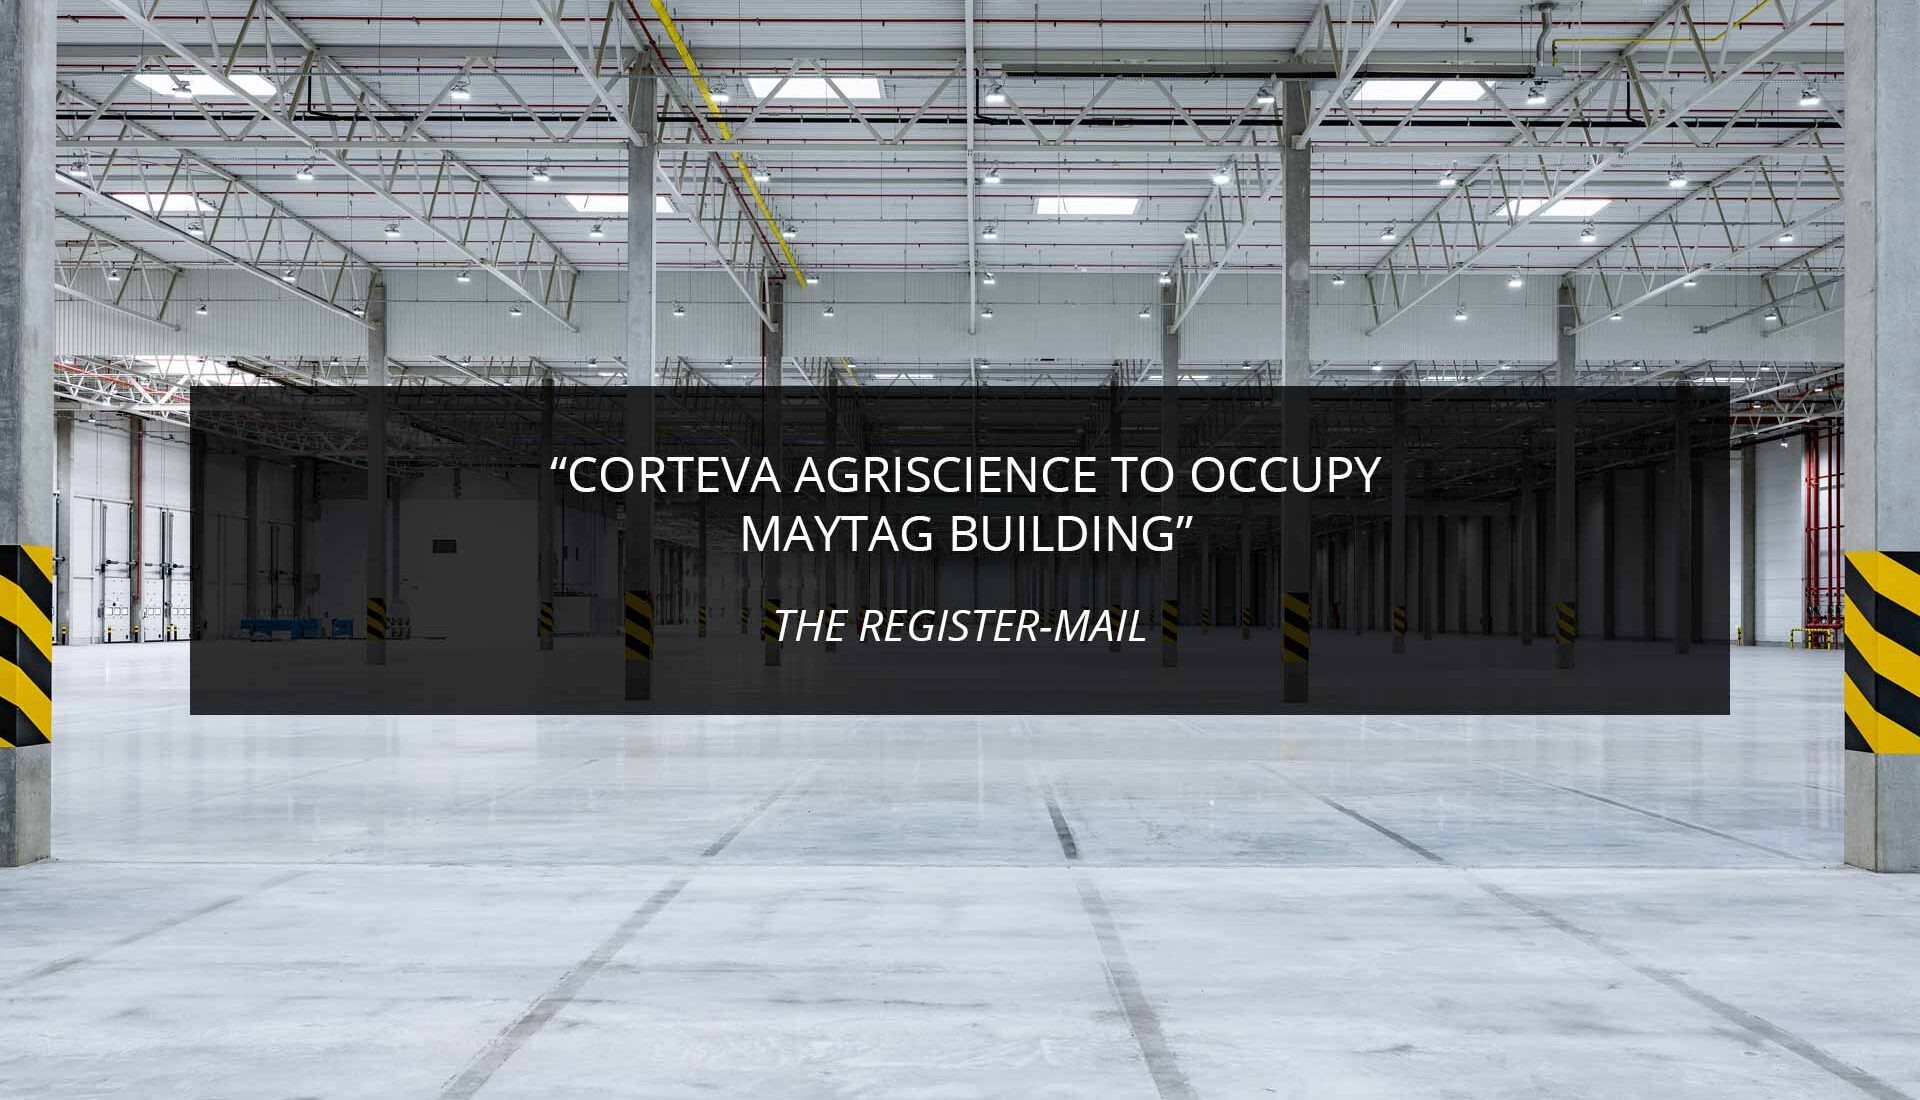 Corteva Agriscience to Occupy Maytag Building